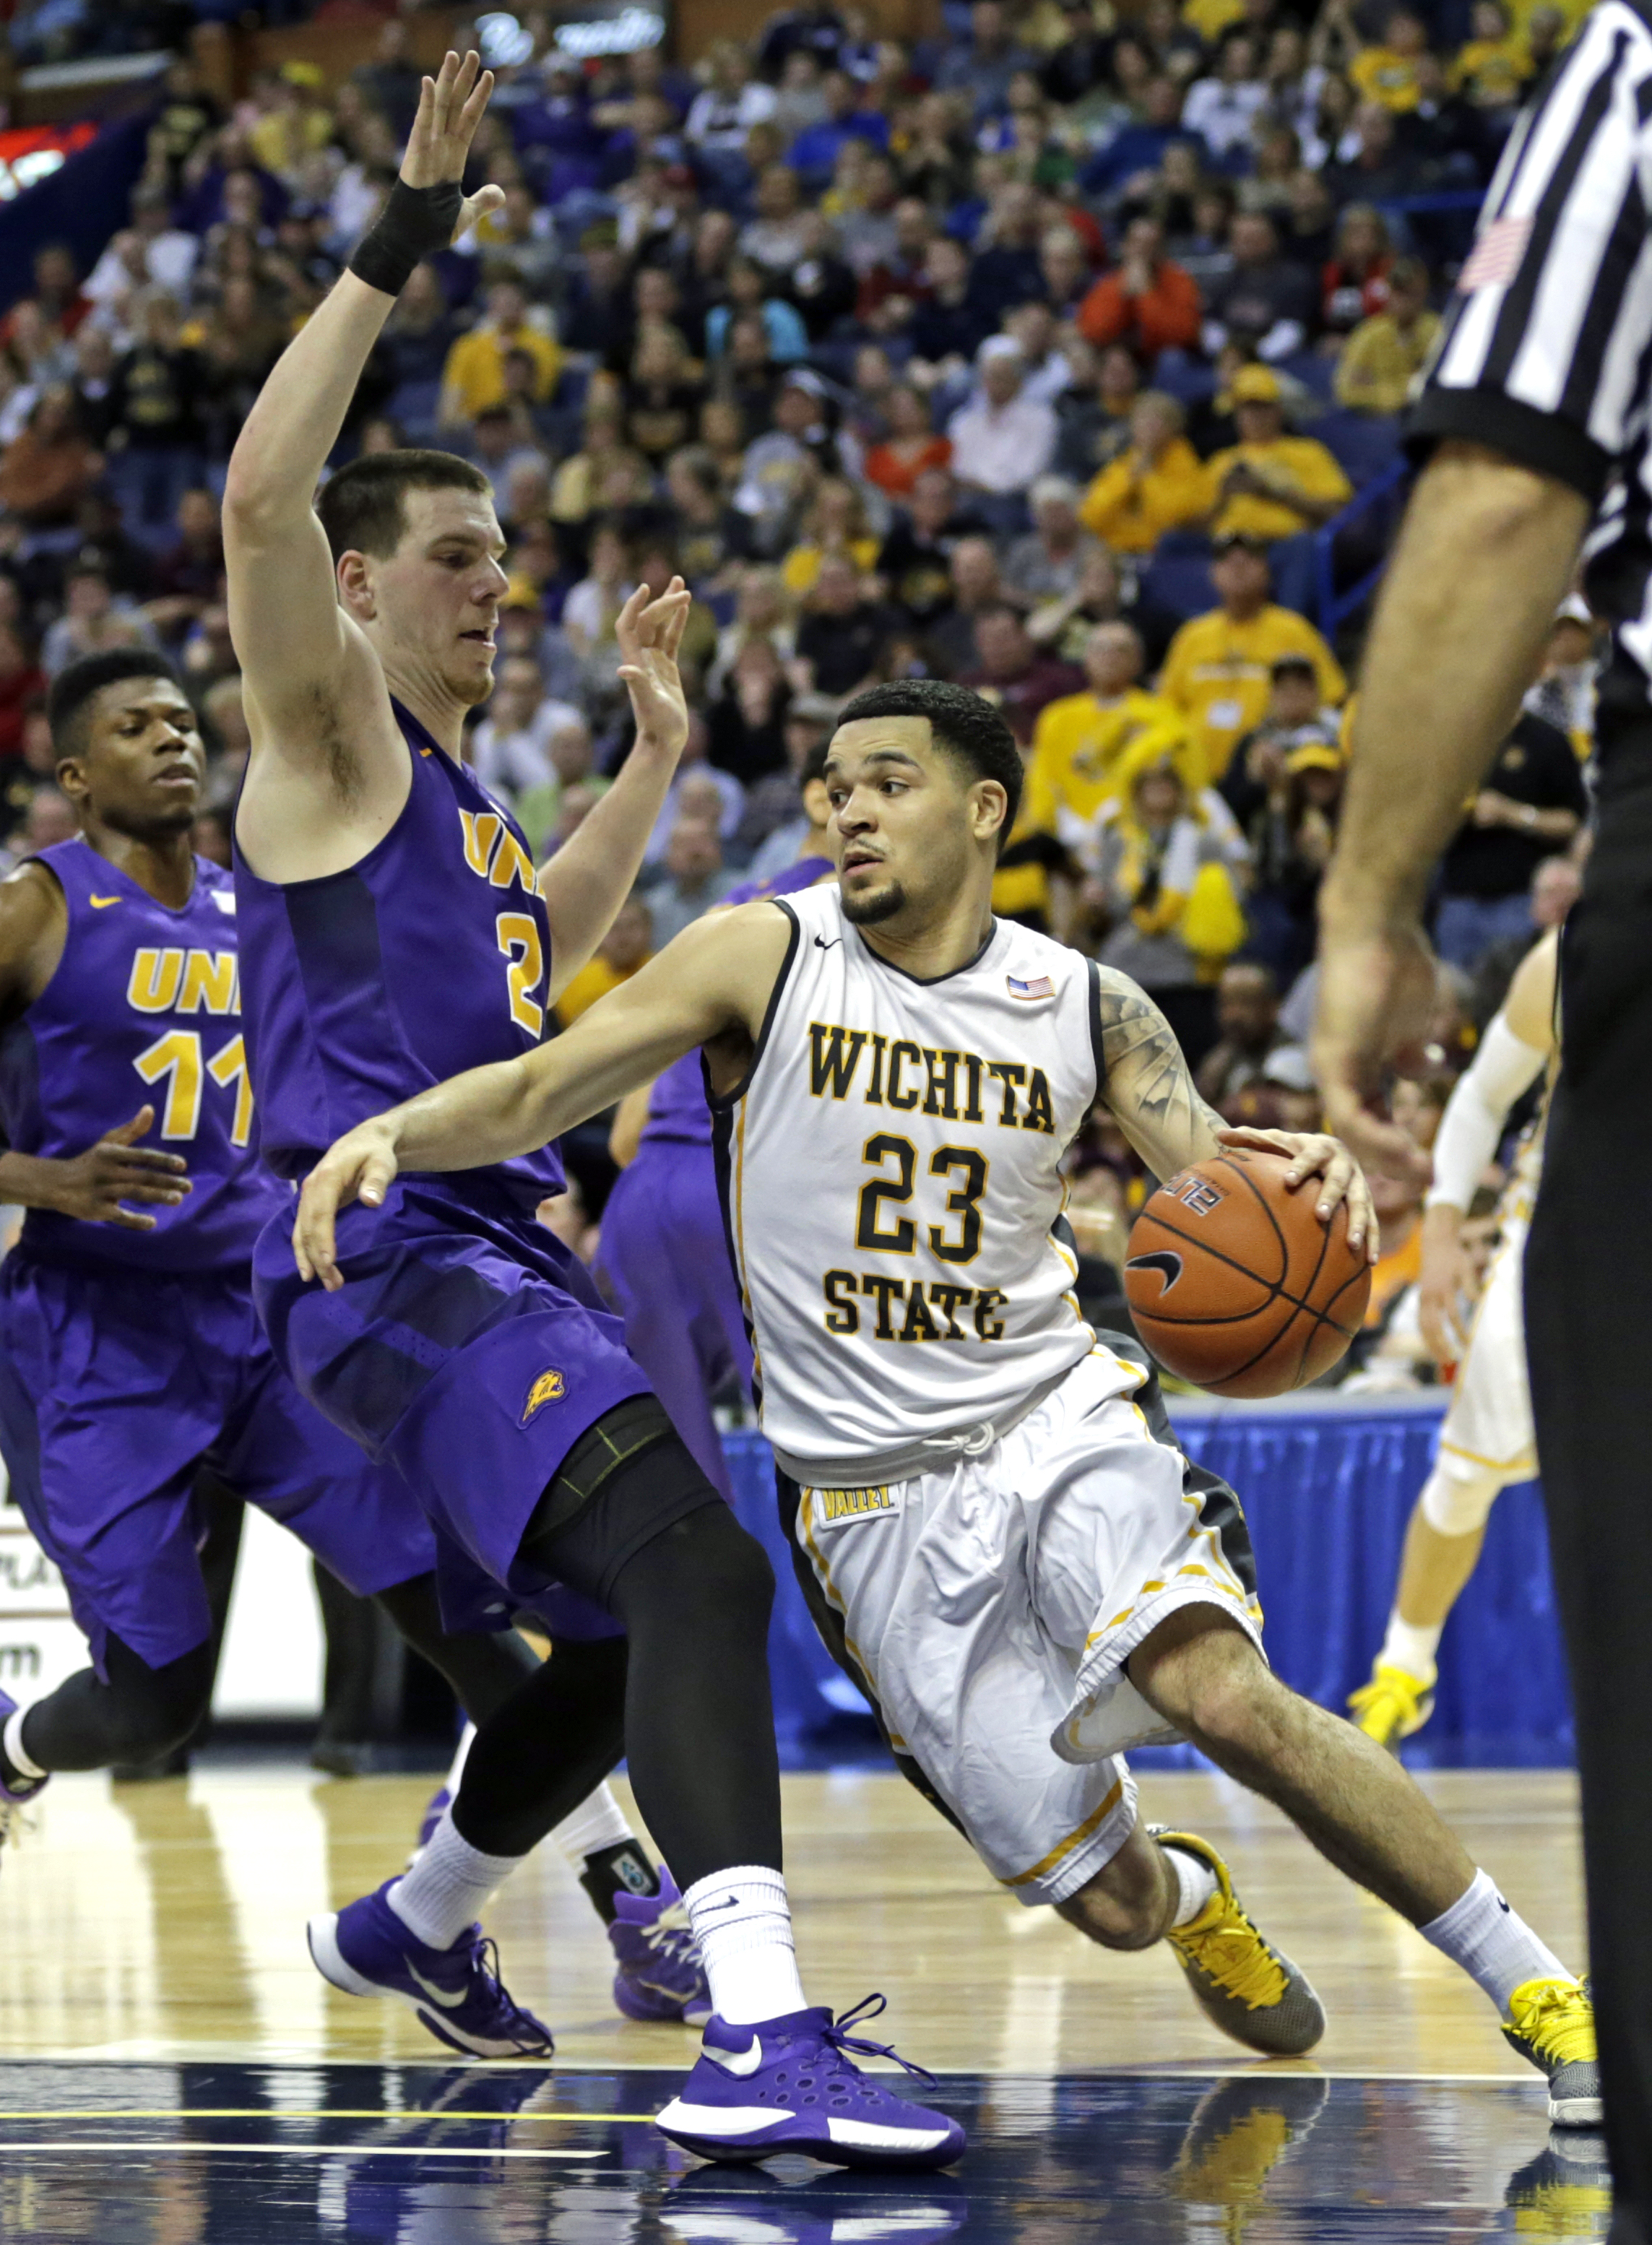 FILE- In this March 5, 2016, file photo, Wichita State's Fred VanVleet (23) drives around Northern Iowa's Klint Carlson (2) during the second half of an NCAA college basketball game in the semifinals of the Missouri Valley Conference men's tournament in S